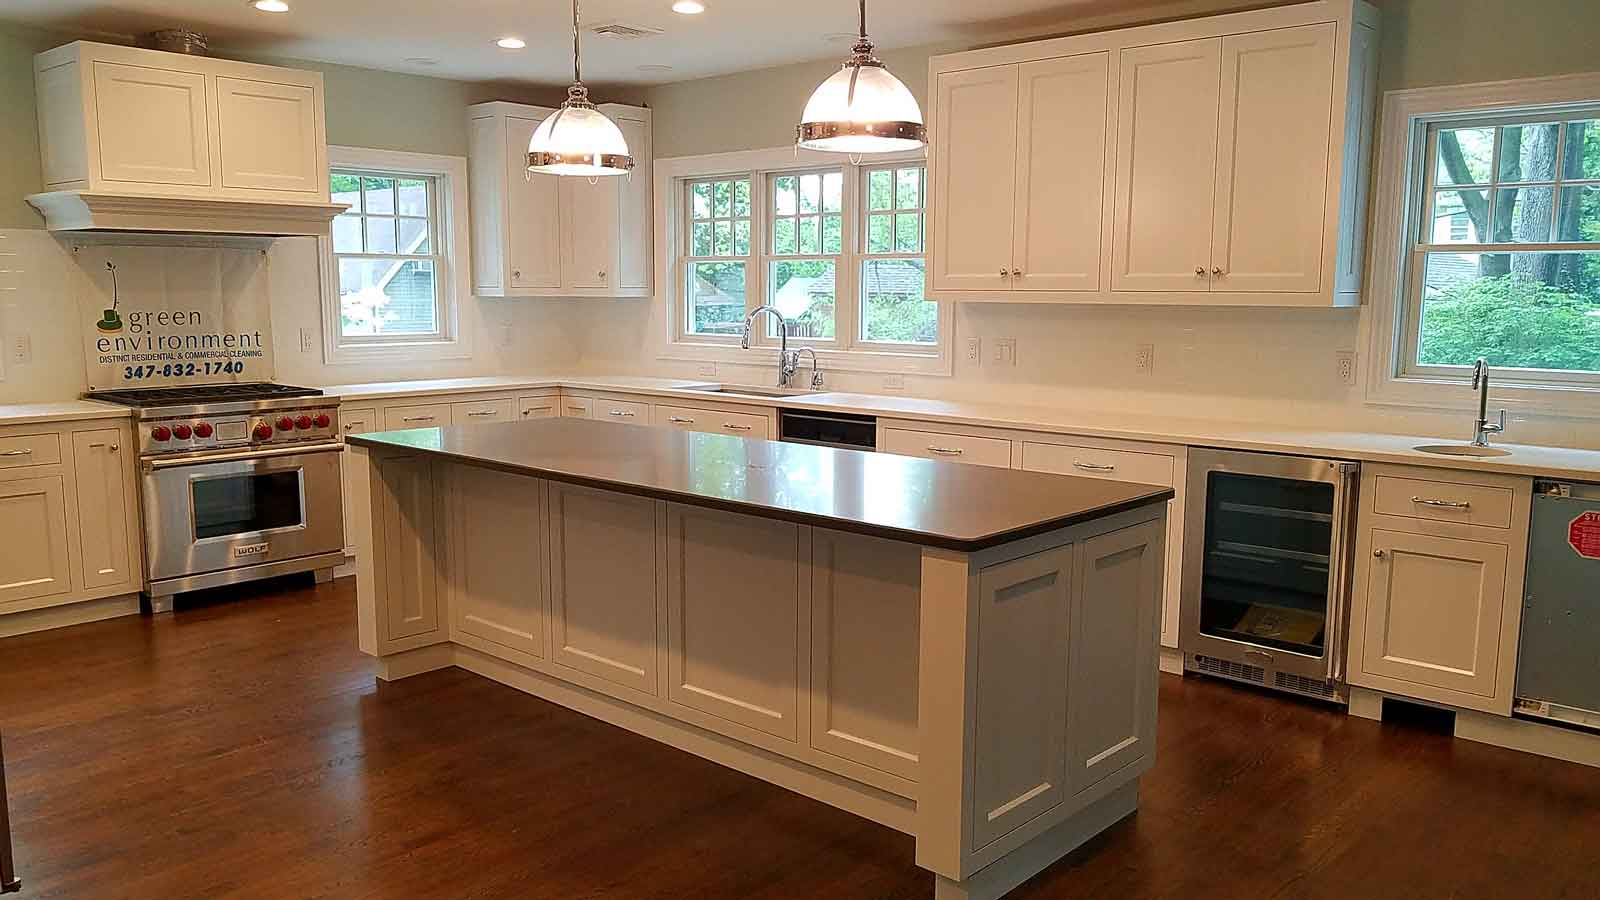 Luxury kitchen with two sinks, windows, and custom cabinets.